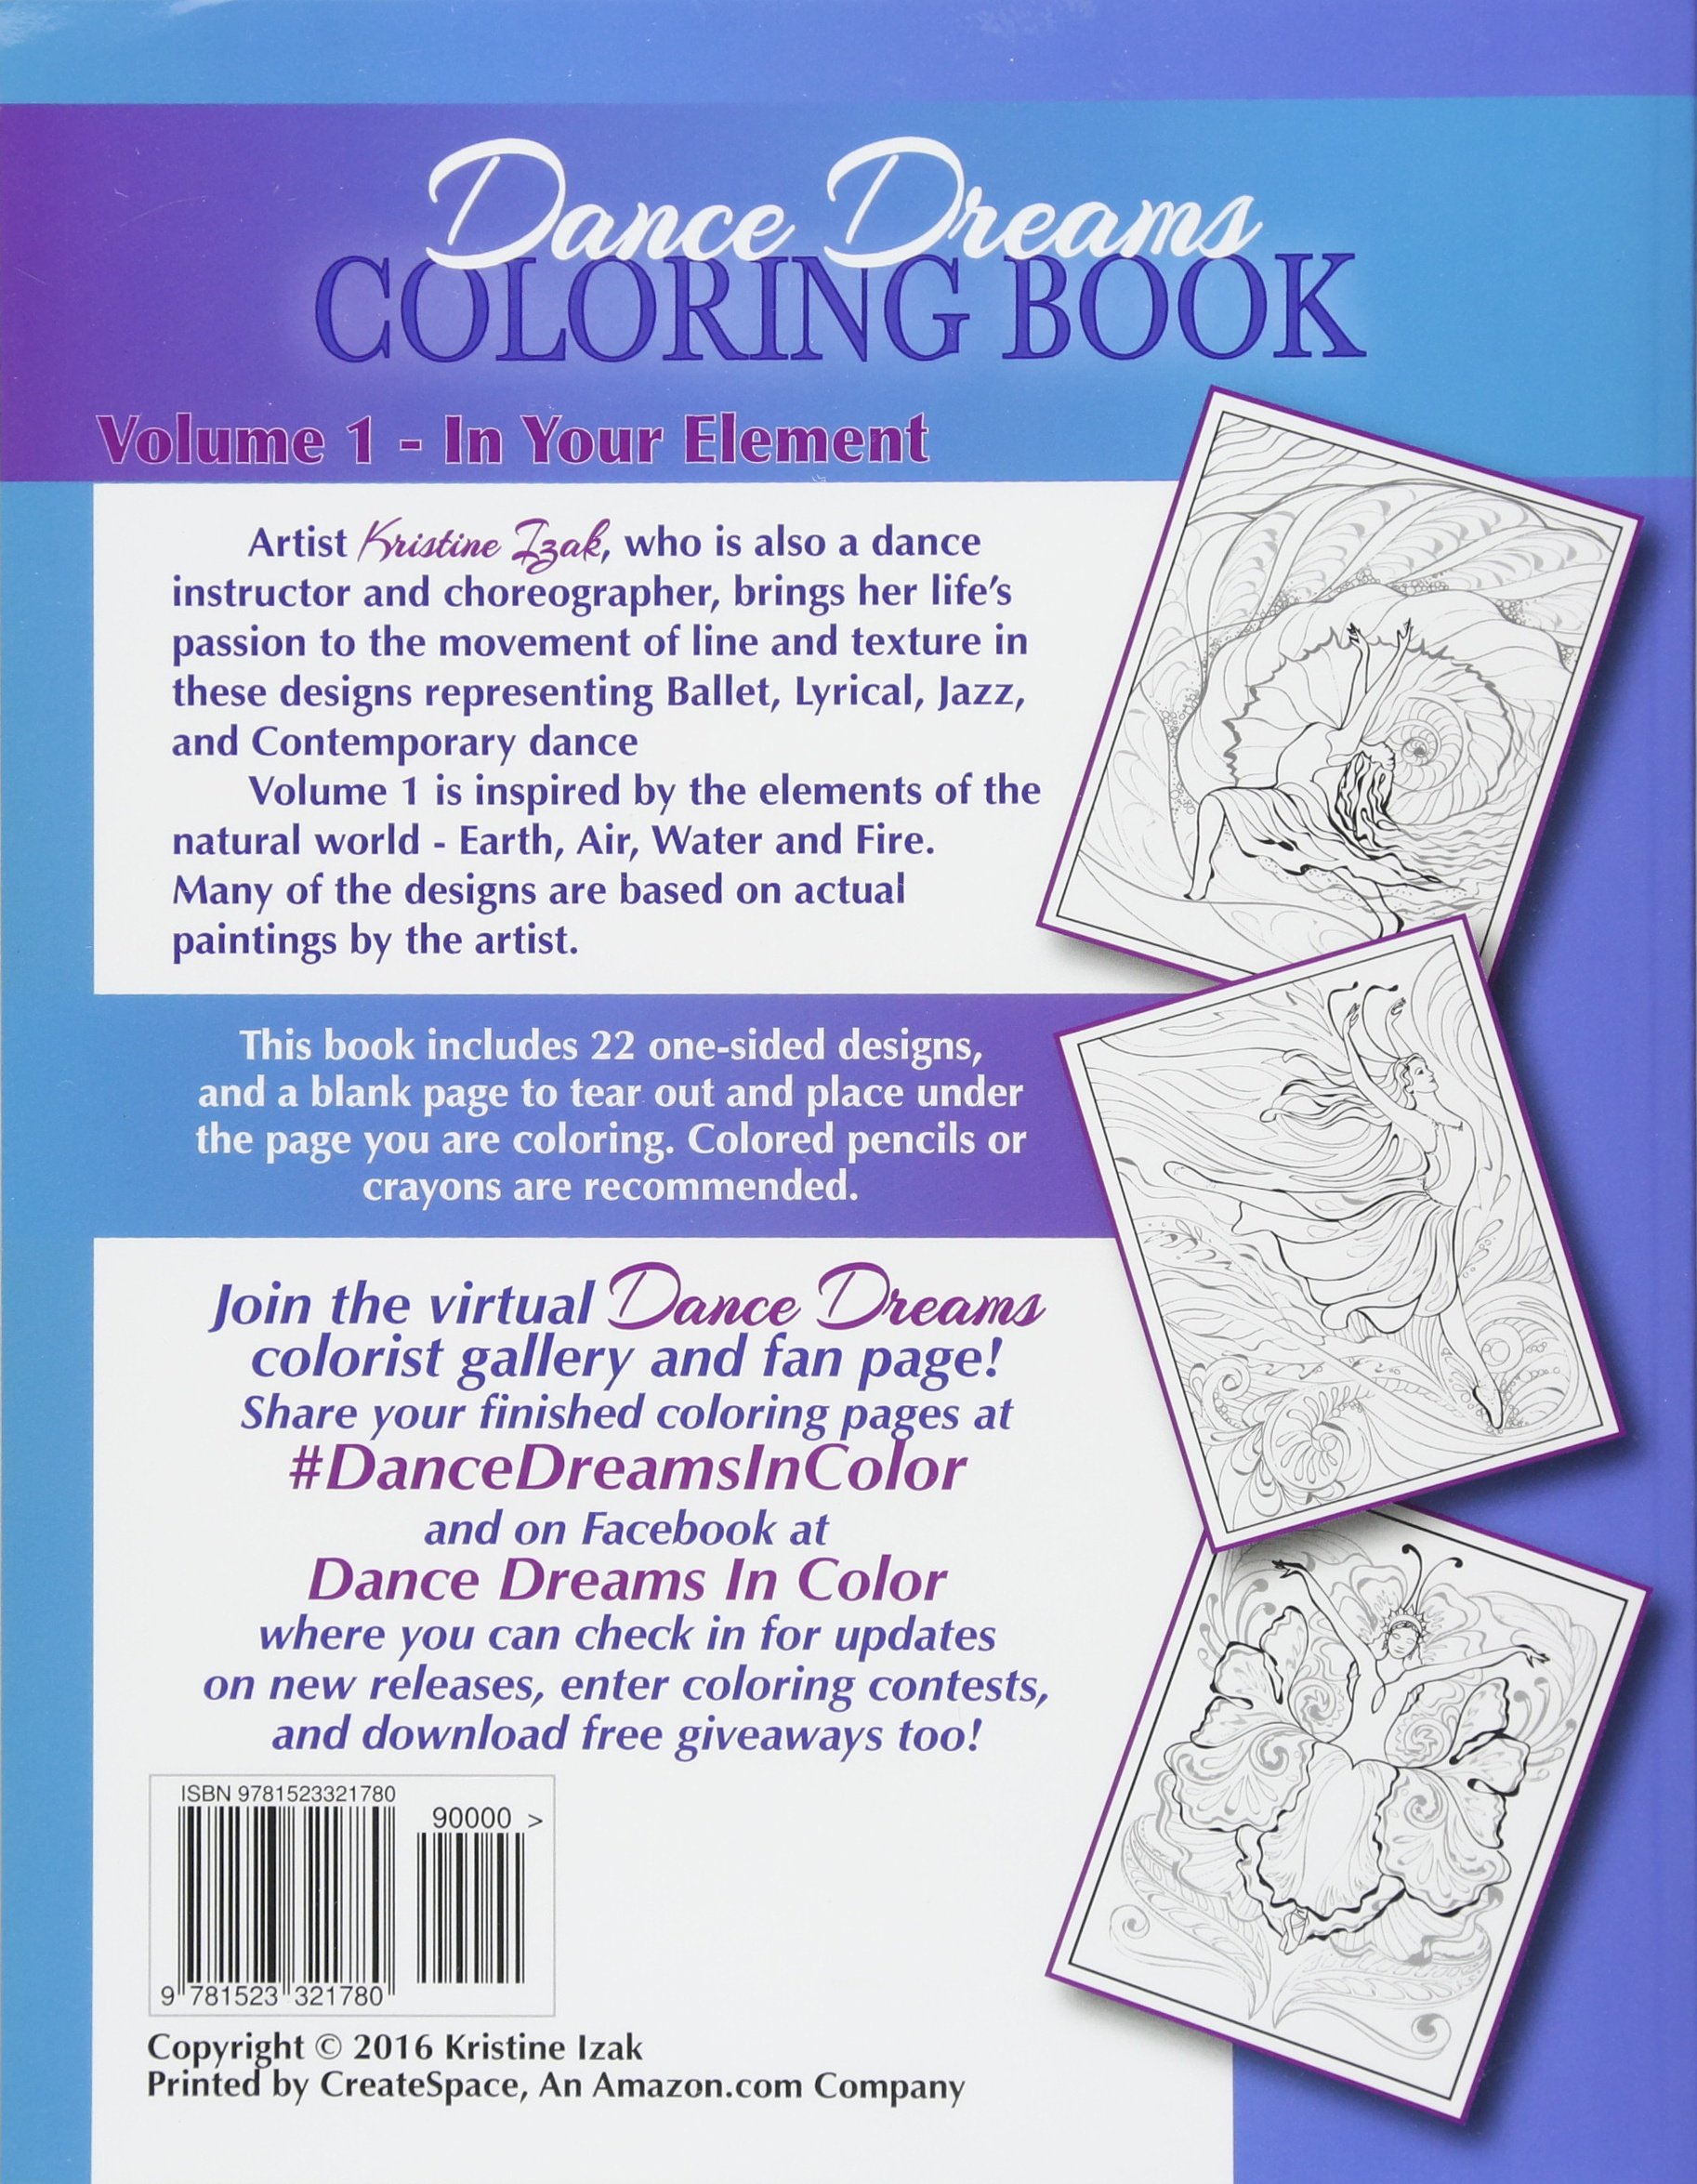 Dance Dreams Coloring Book 22 Designs To Inspire The Dancing Spirit